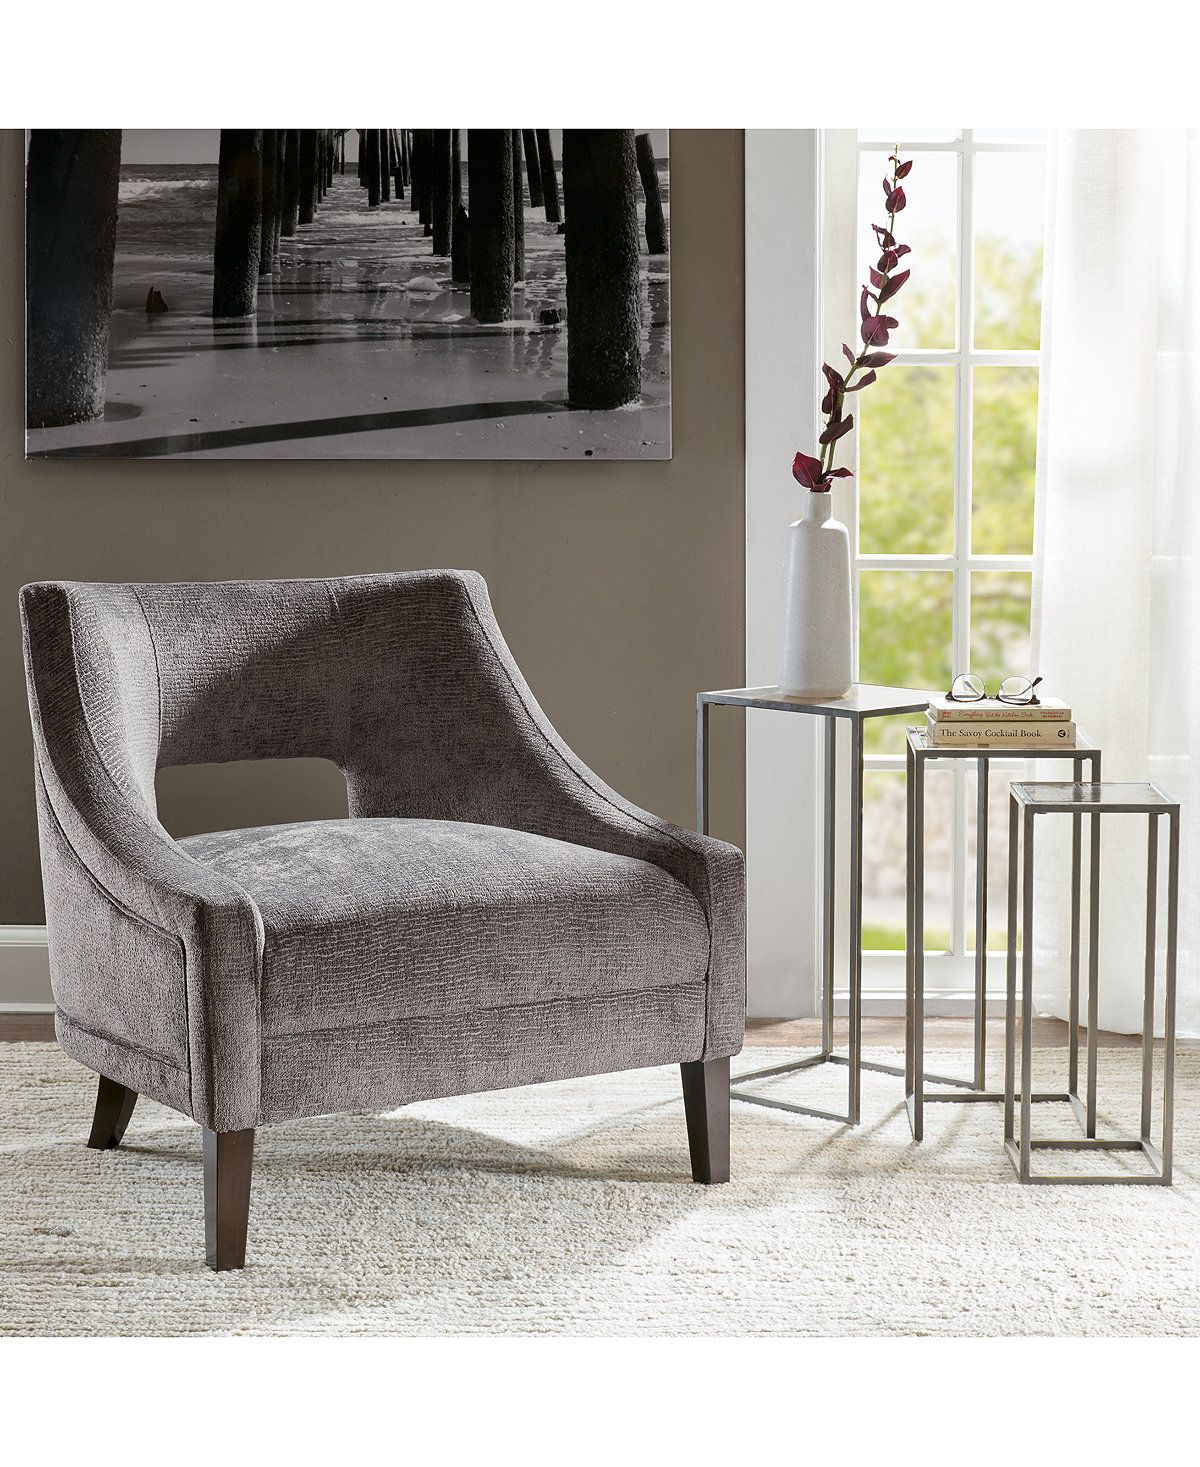 quick ship furniture - whitney accent chair quick ship furniture macy's accent